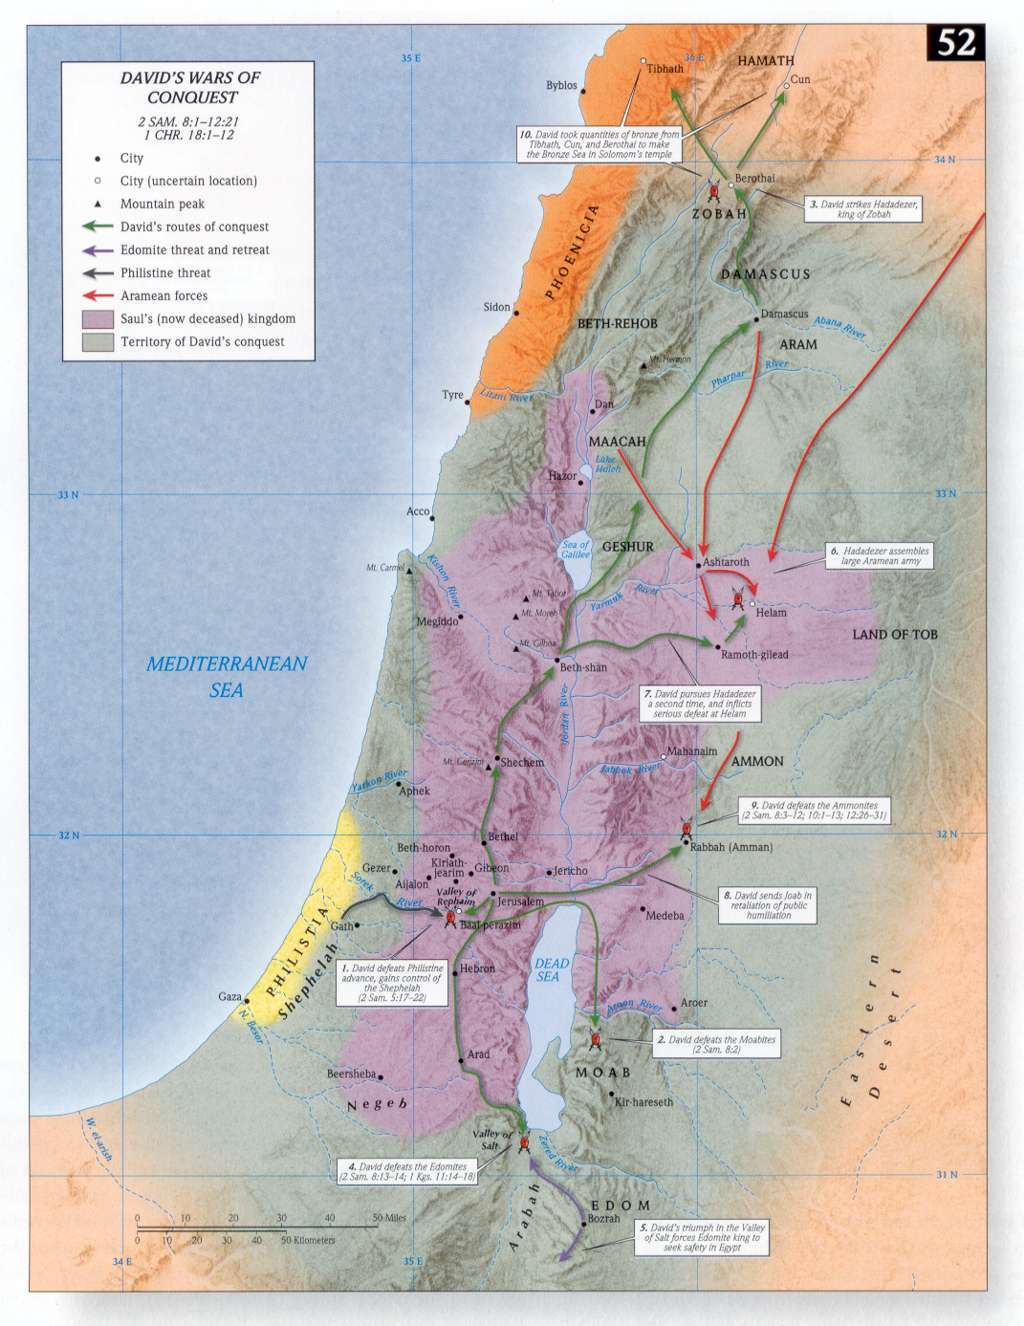 Bible Land Maps | New Testament Christians.Com on shem map, crown of thorns map, caliph map, dionysus map, temptation map, noah's flood map, ancient judaism map, ywam map, freedom map, missionaries of charity map, indigenous religions map, the patriarchs map, statue map, ahab map, shroud of turin map, emmanuel map, youth with a mission map, christmas map, occult map, great commission map,